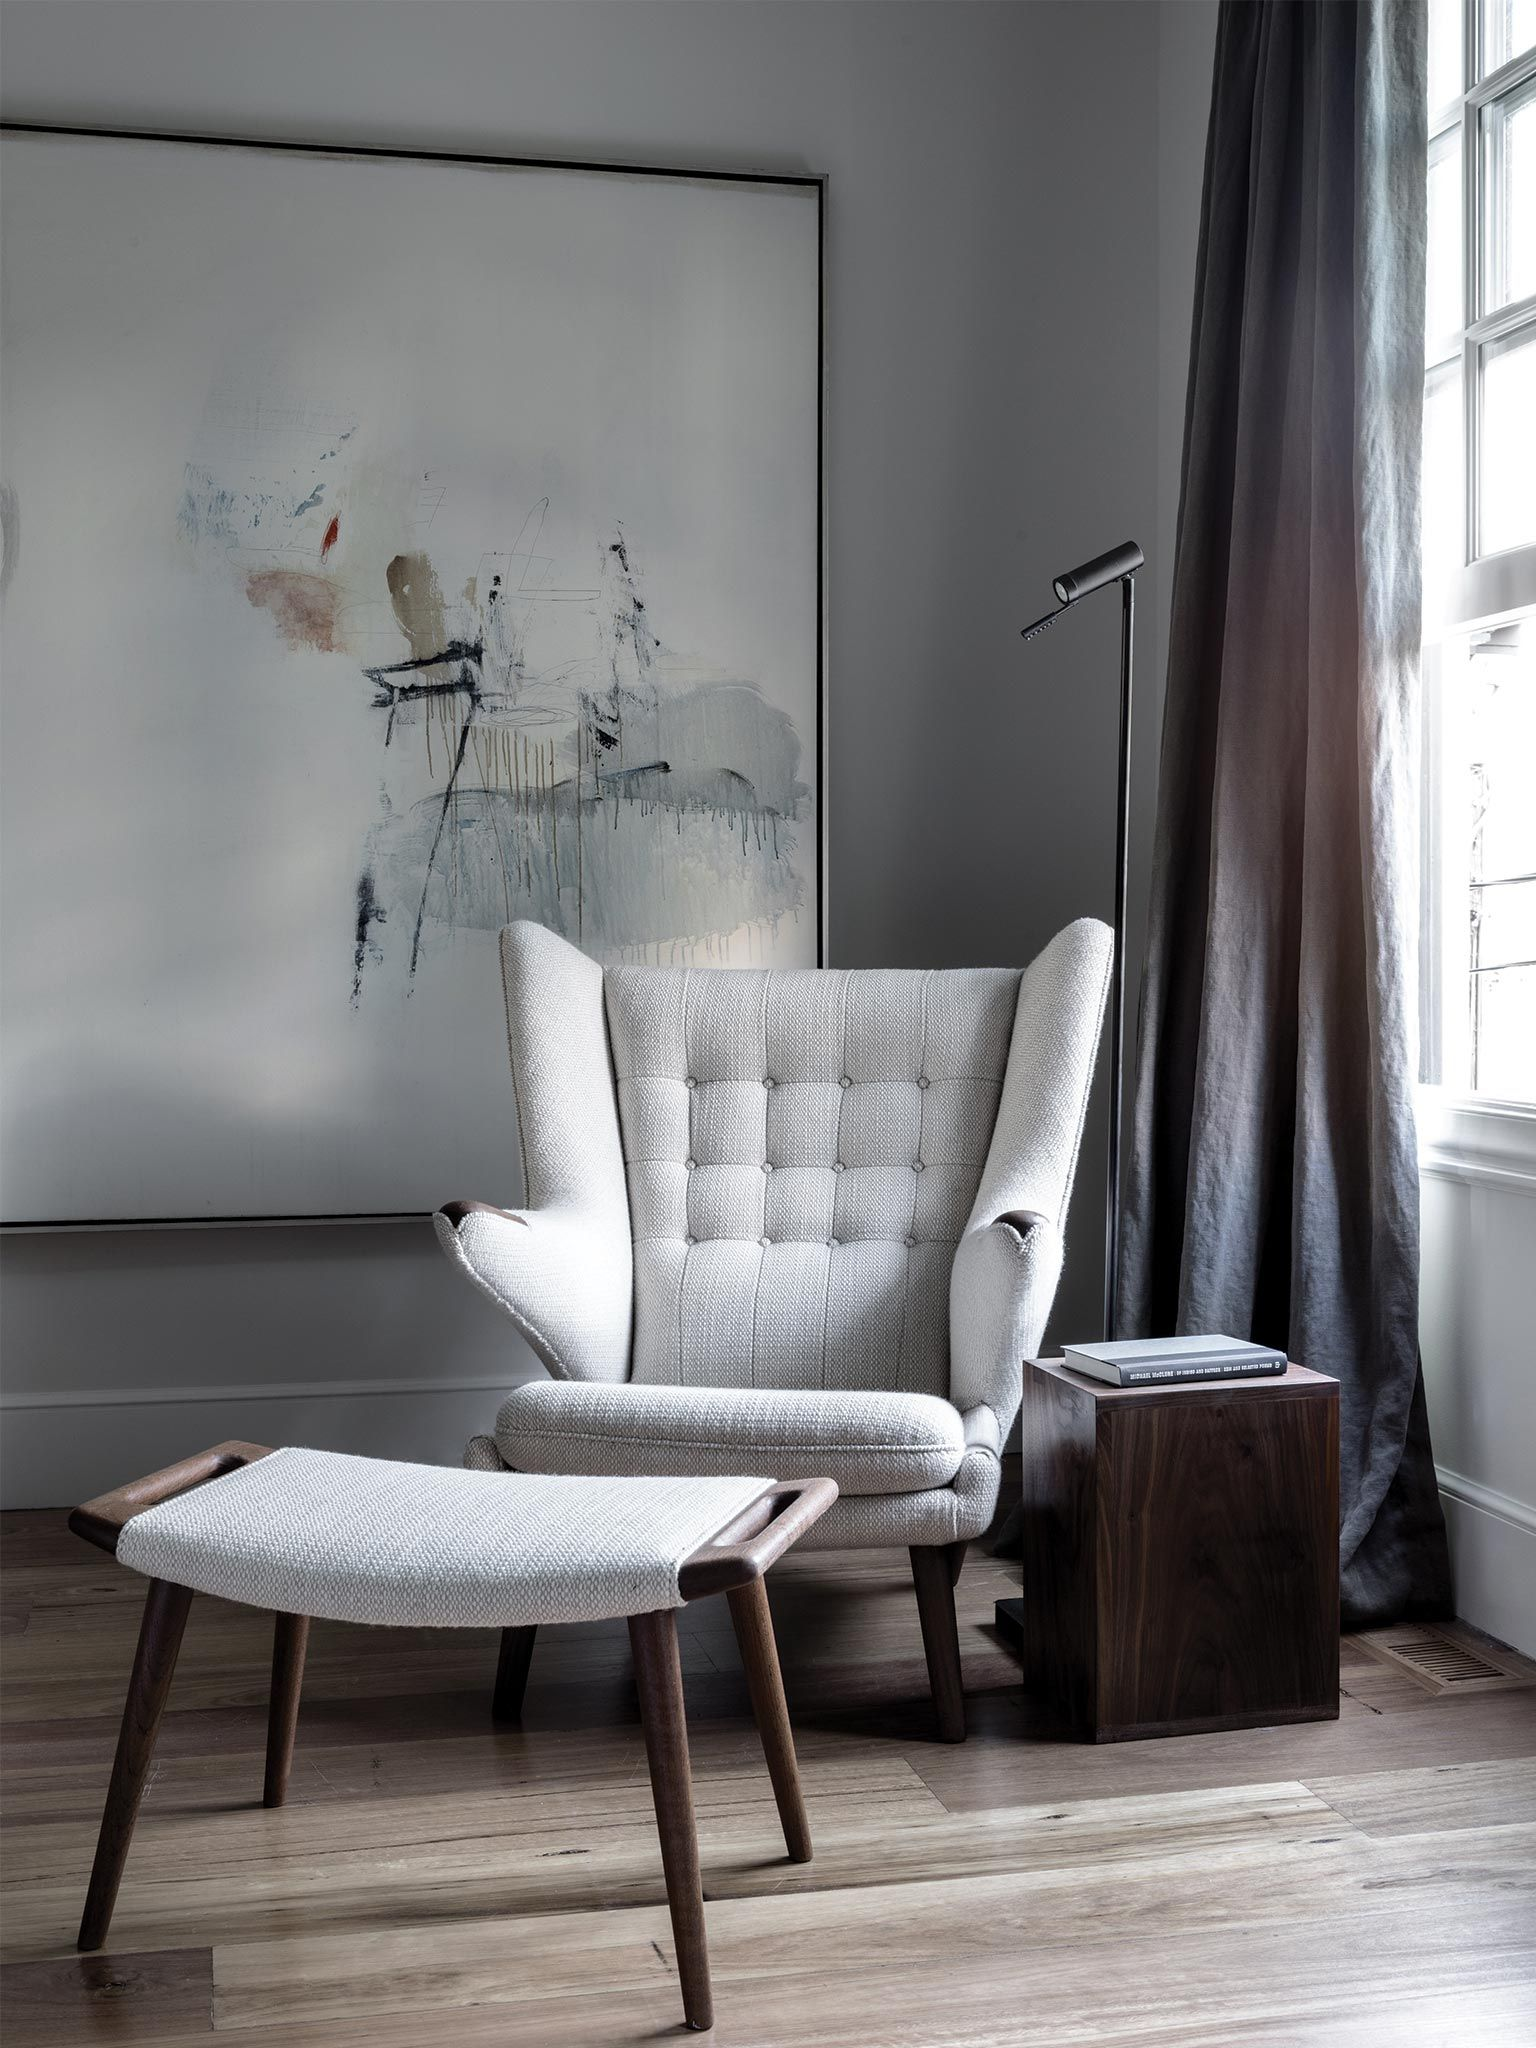 Modernica 39 S Papa Bear Chair Offers A Scandi Touch With Such Large Scale Artwork In The Background Clean Colors A Papa Bear Chairs Bedroom Design Interior